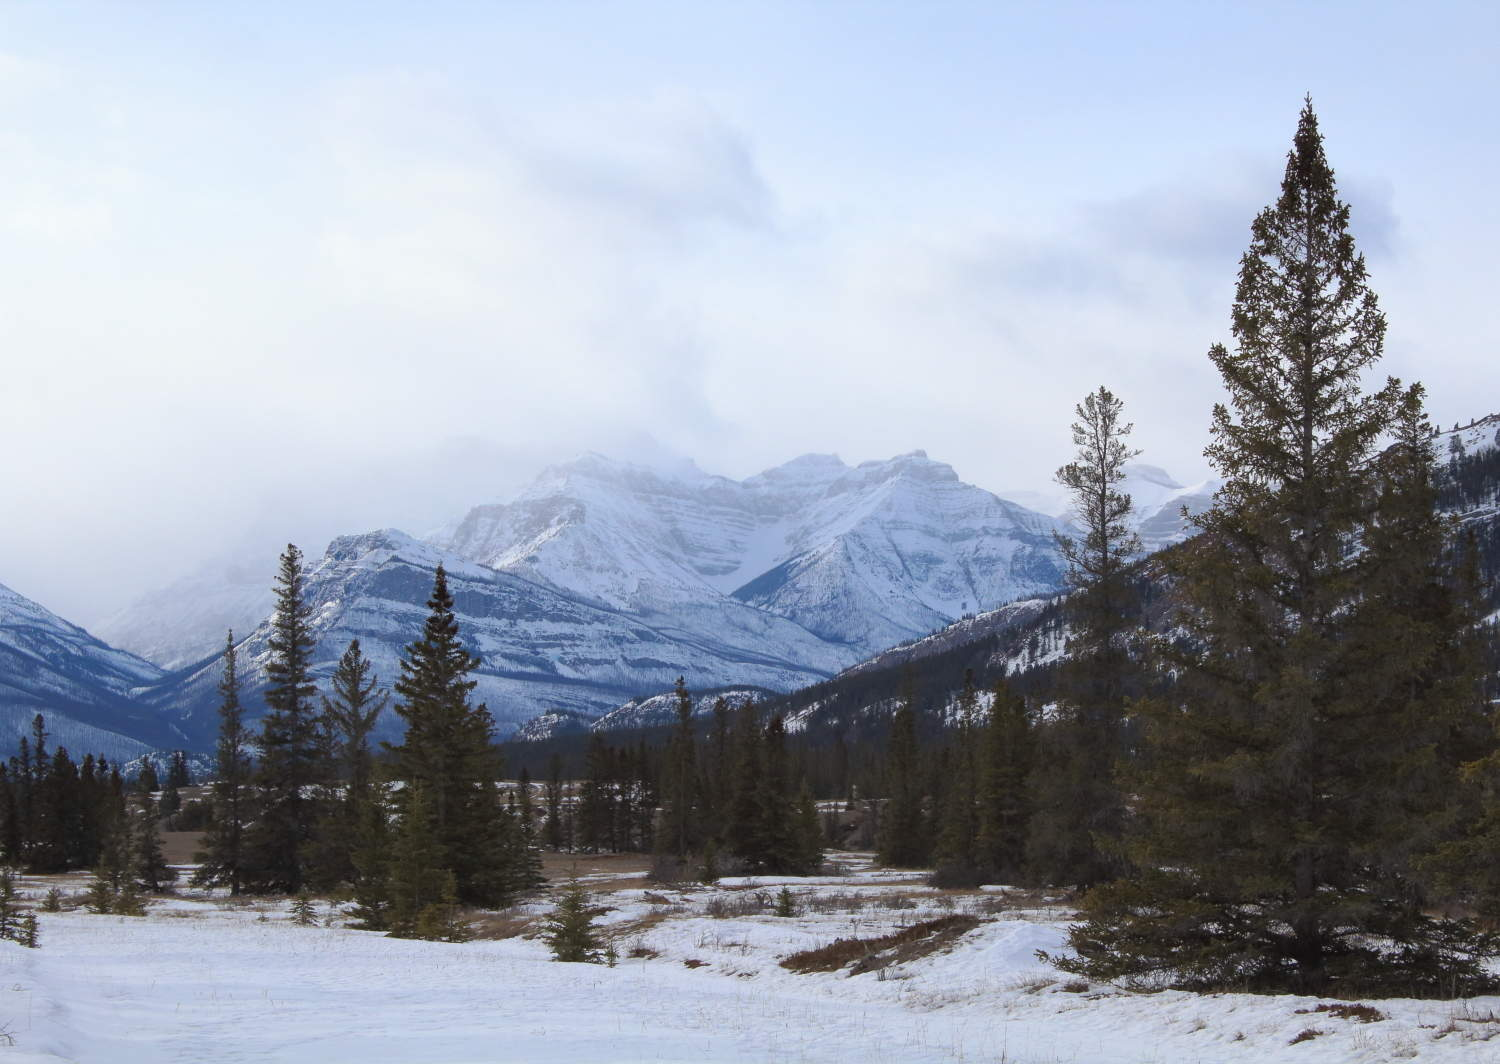 The view from our hike to Siffleur Falls